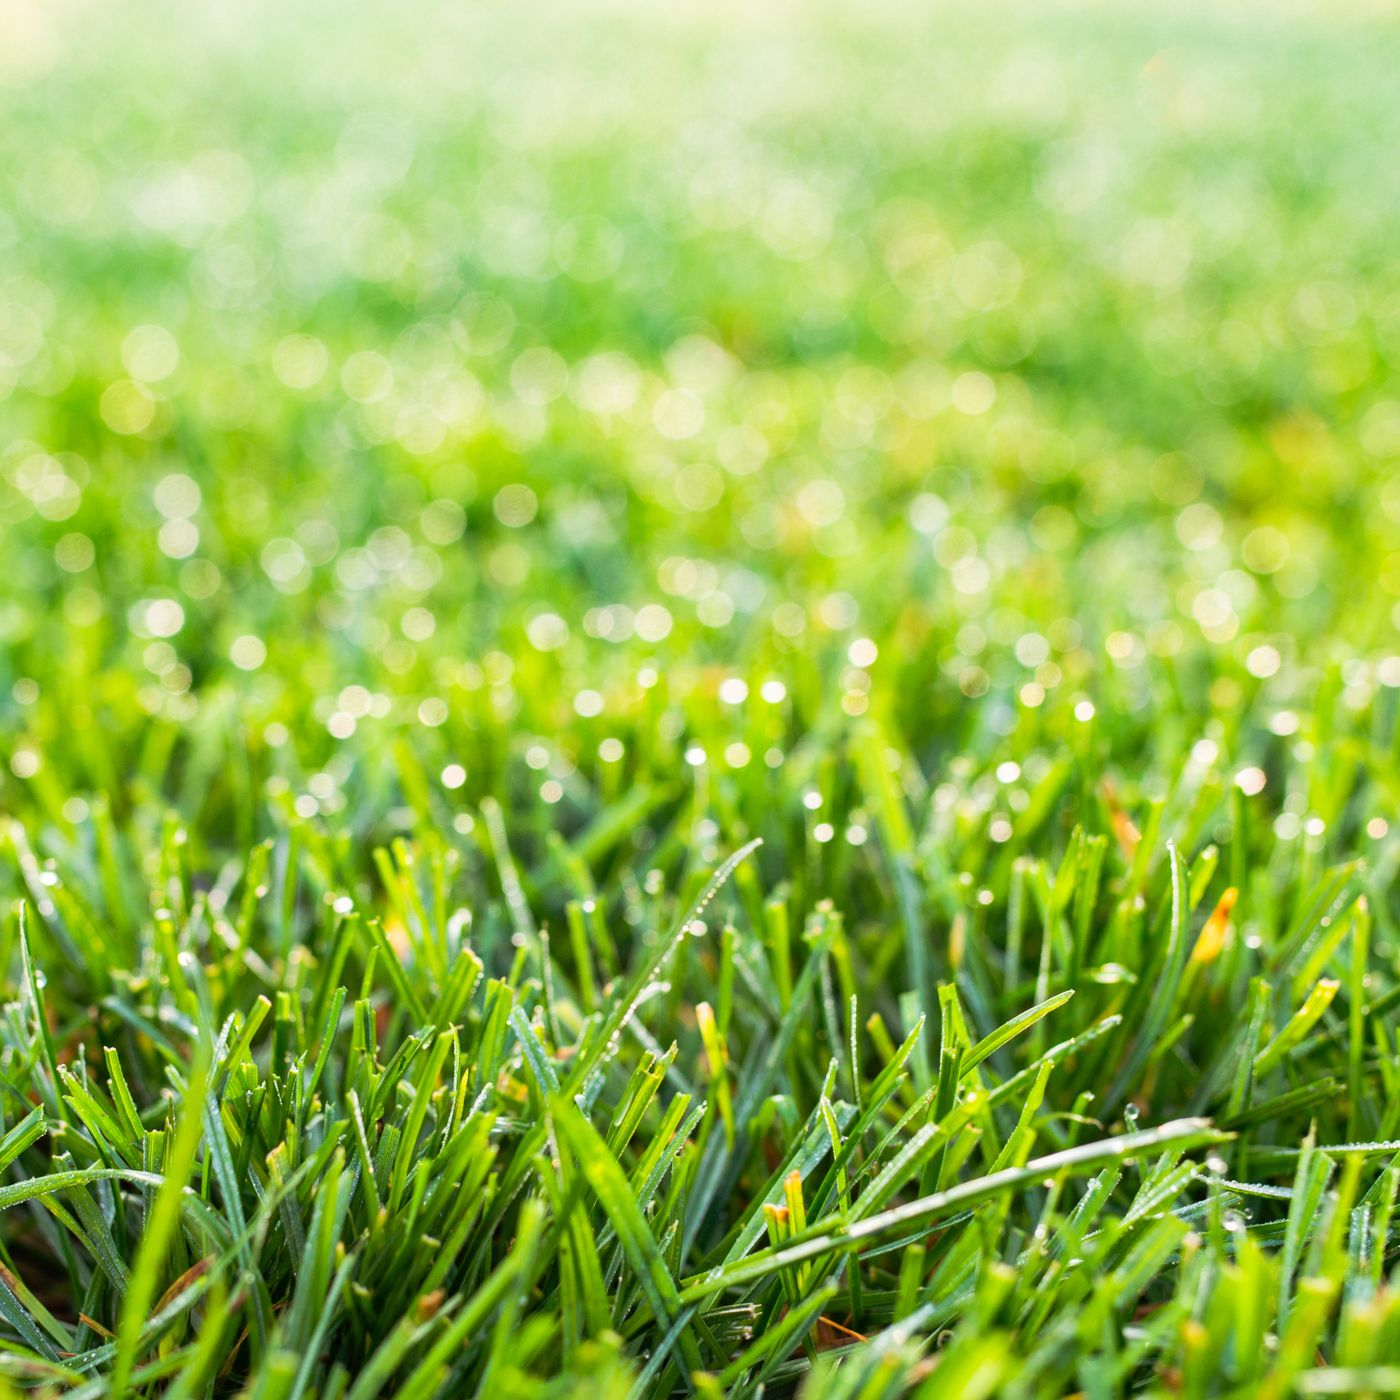 Fescue Grass 101 What It Is And How To Grow It This Old House